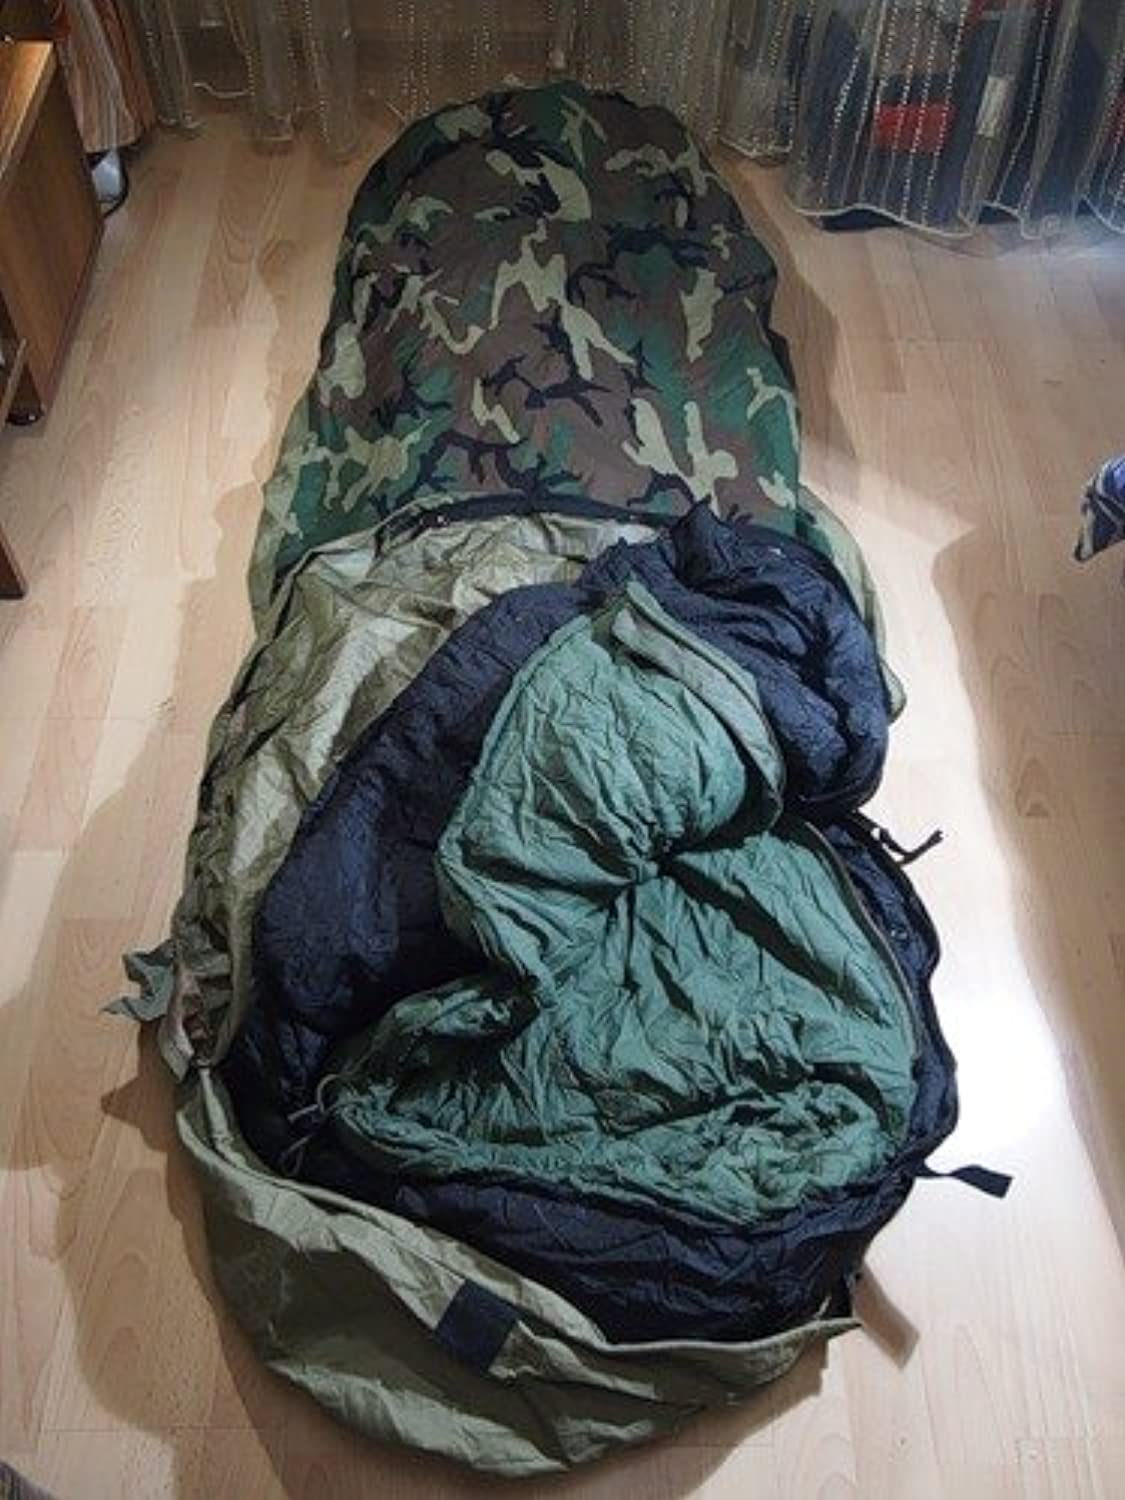 US Military 4PC Weather Resistant Modular Sleep System Waterproof GoreTex Cover